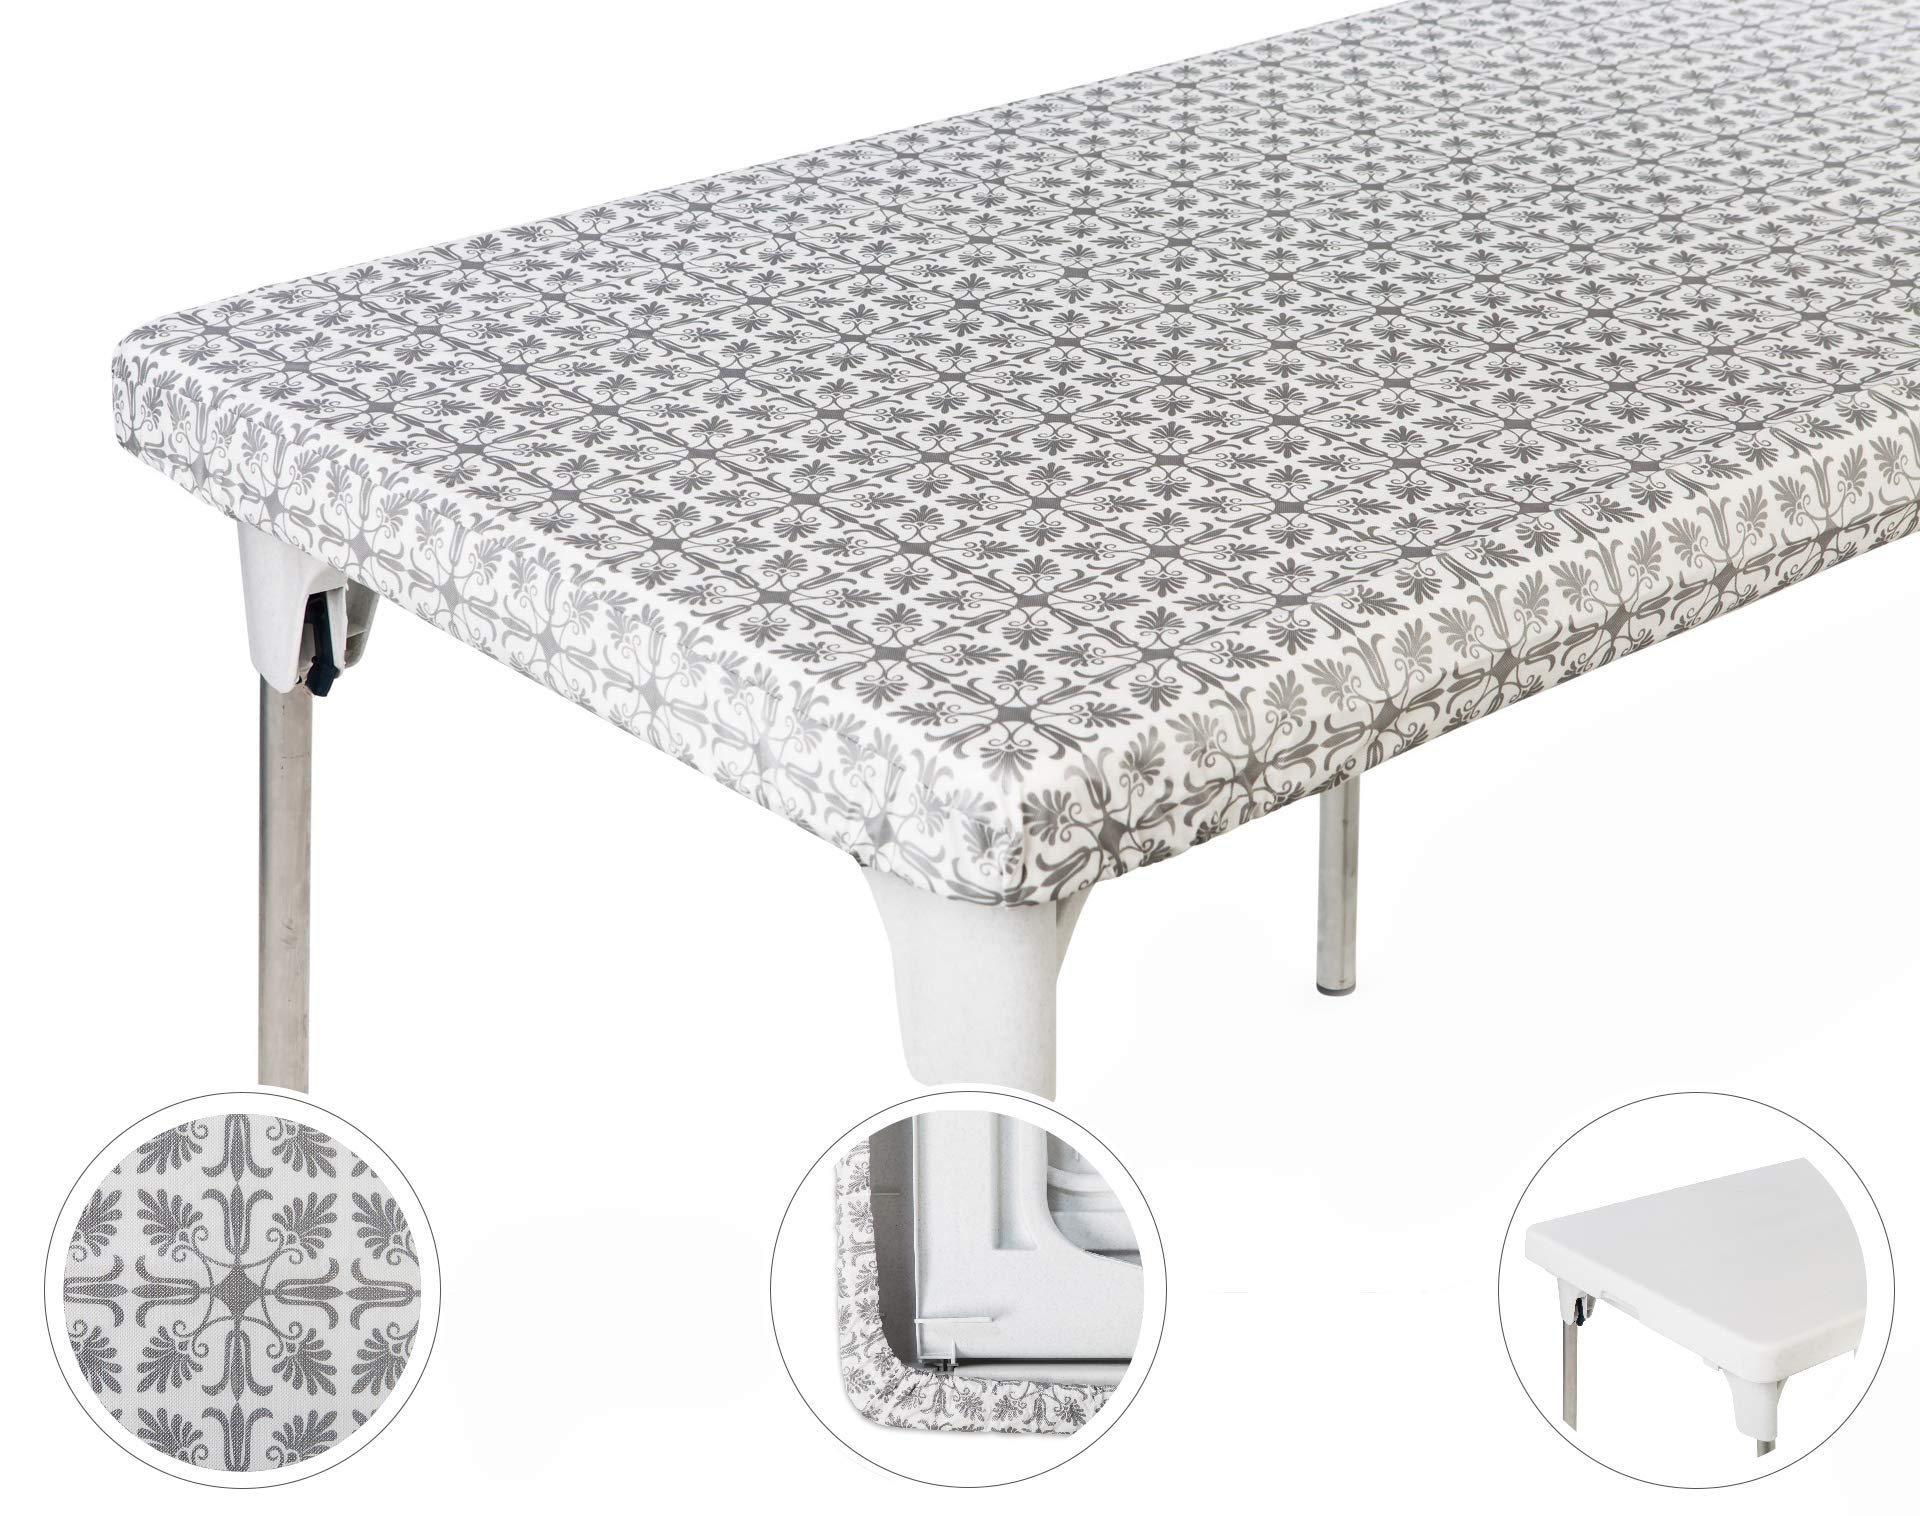 TopTableCloth Table Cover Silver Patterned Elastic on the corner for folding table 6ft (30'' x 72'') Waterproof Elastic Edge Fitted Stay put Table Cloth for Travel, Christmas, Picnics, Parties & Outdoor